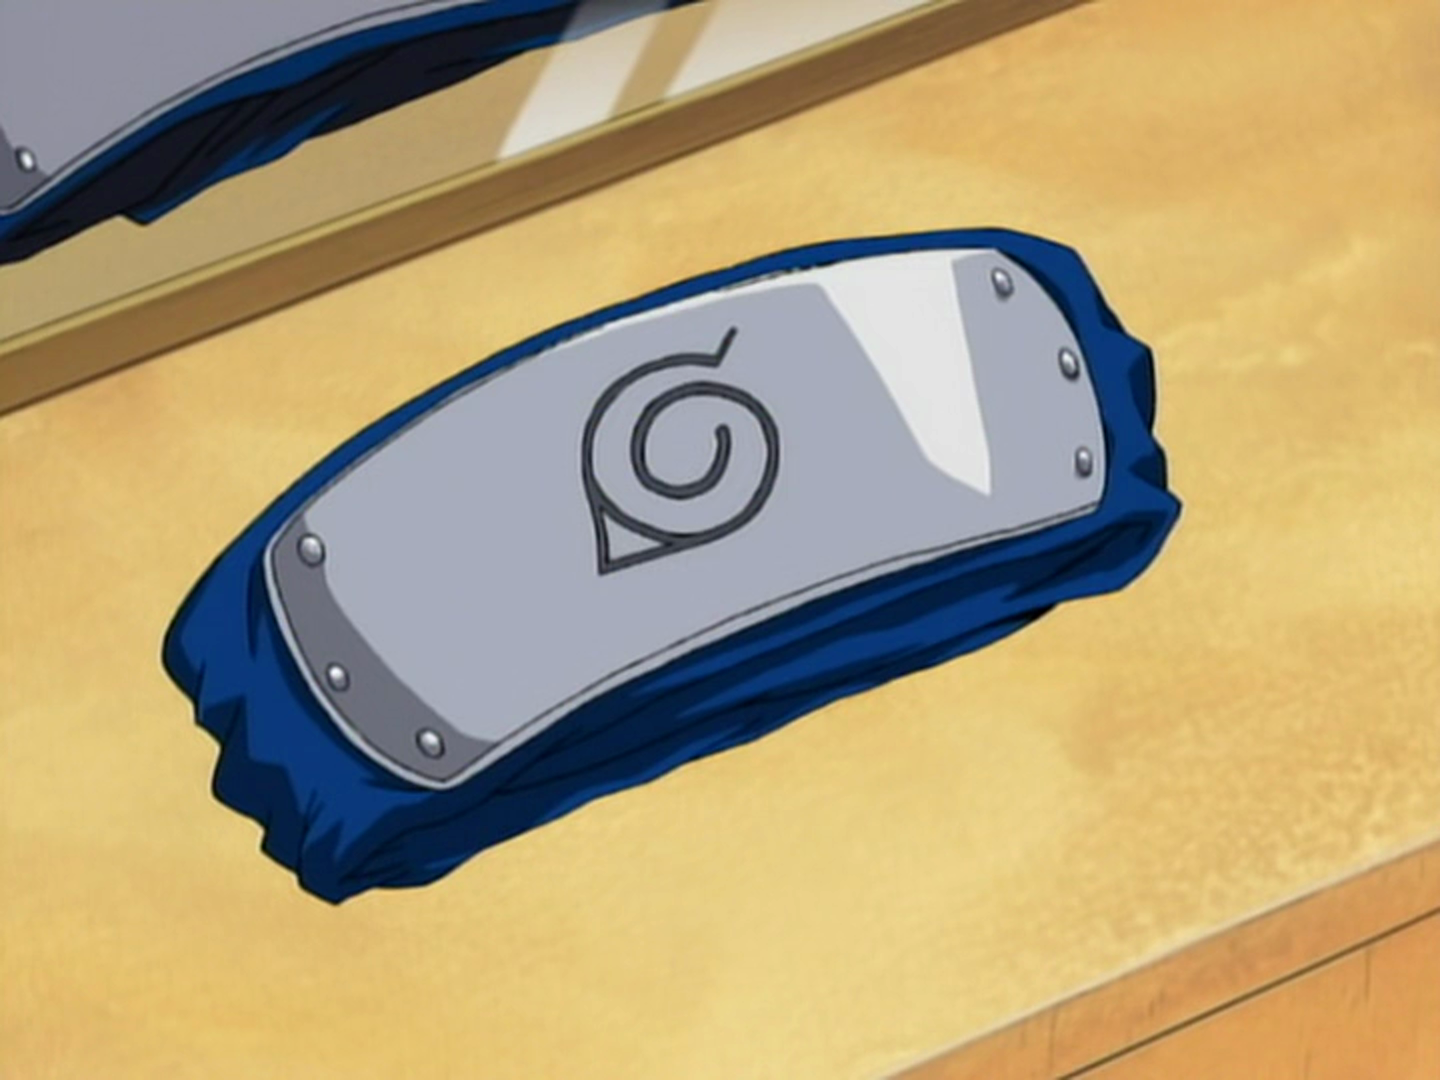 Forehead protector narutopedia fandom powered by wikia forehead protector biocorpaavc Image collections